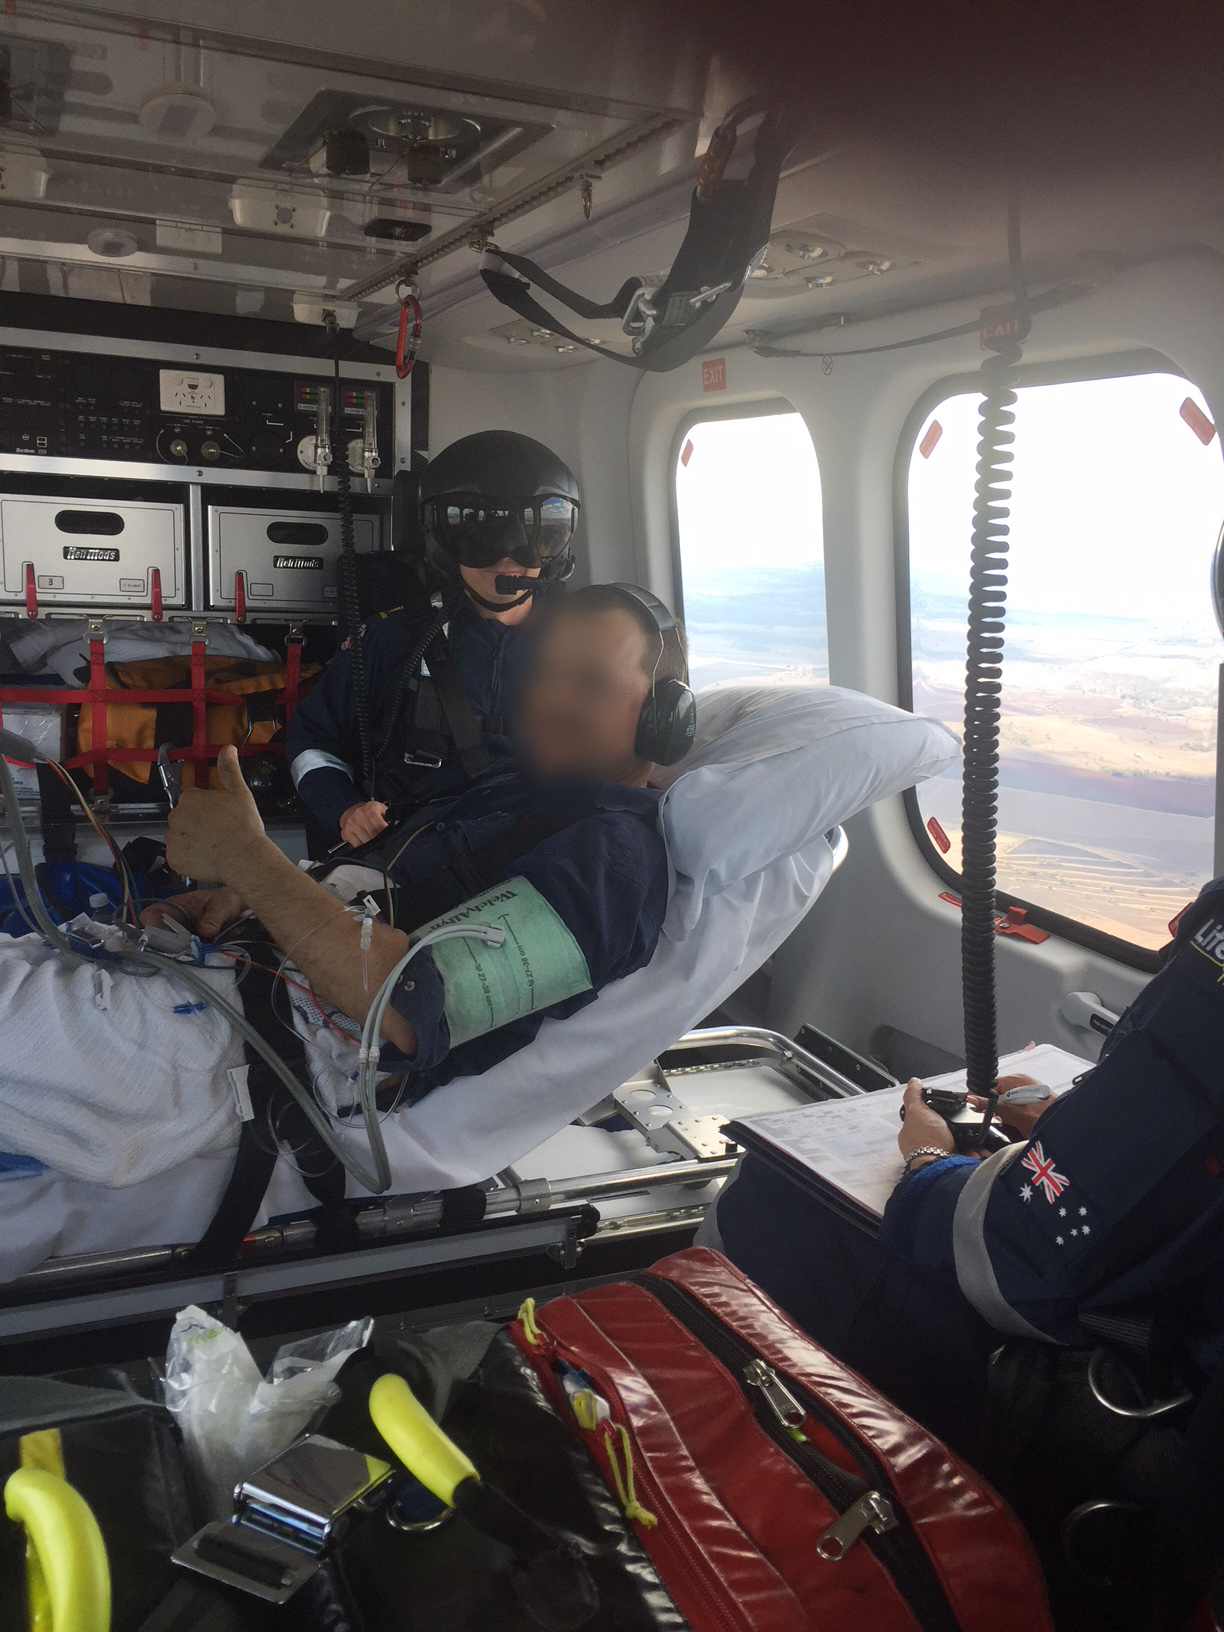 The man was airlifted to Tooowoomba after sustaining injuries from a chainsaw.